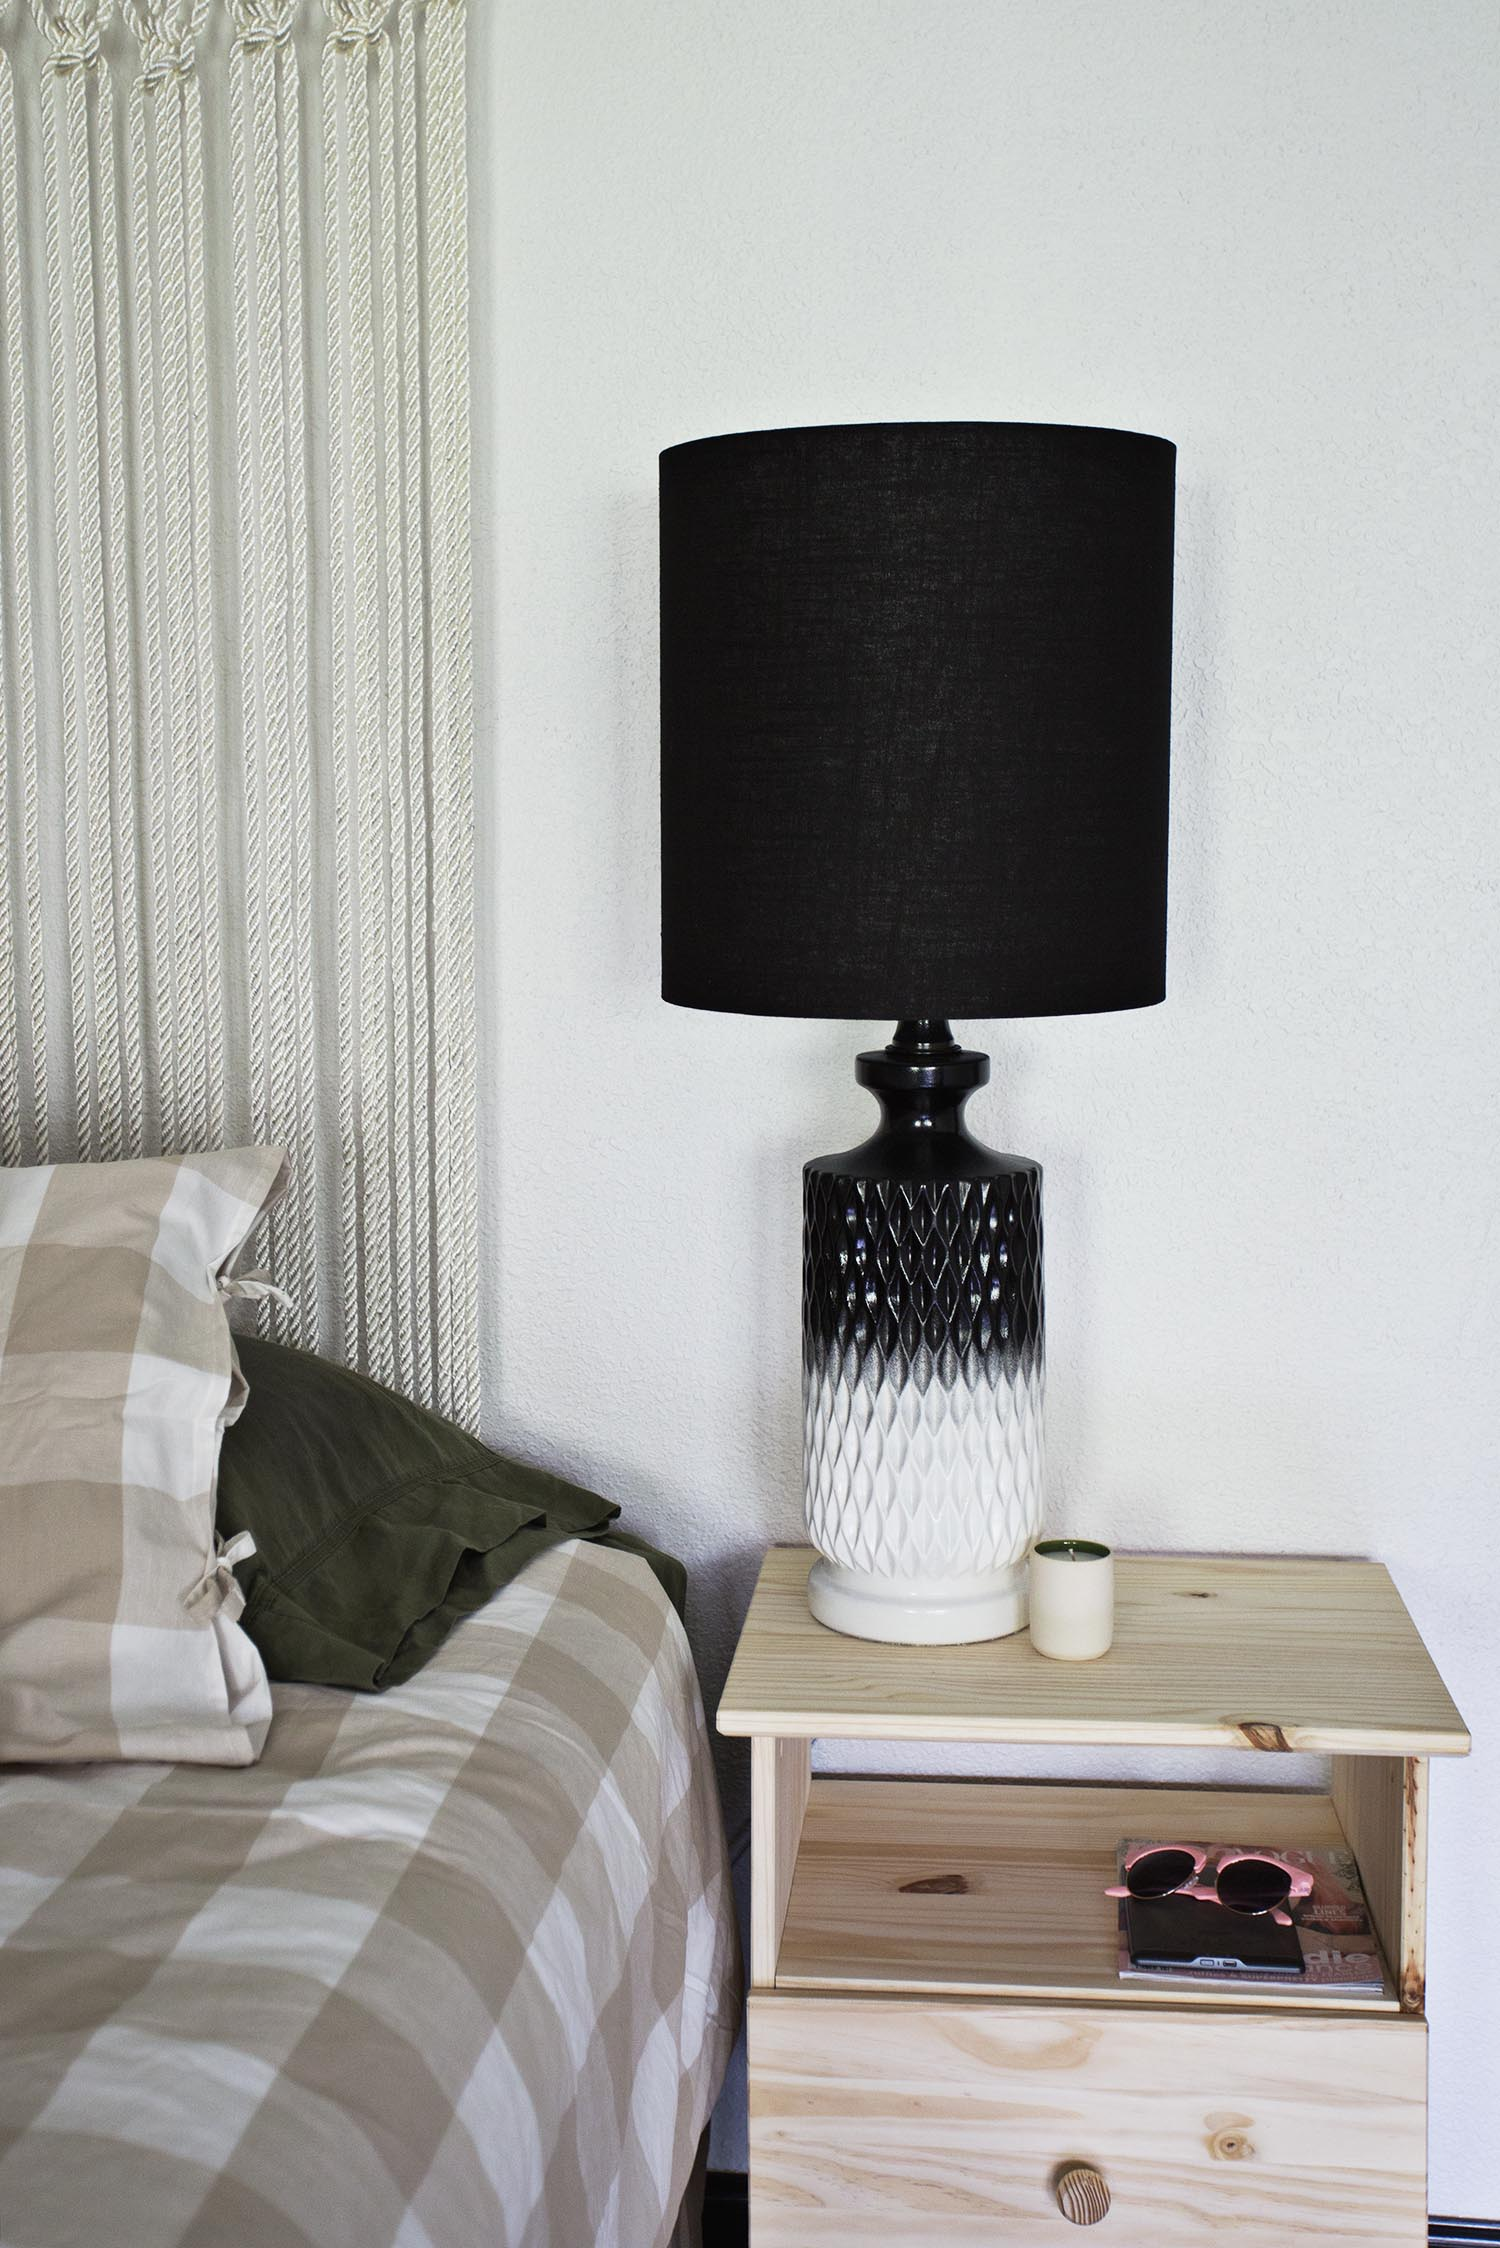 Project restyle bedside lamp